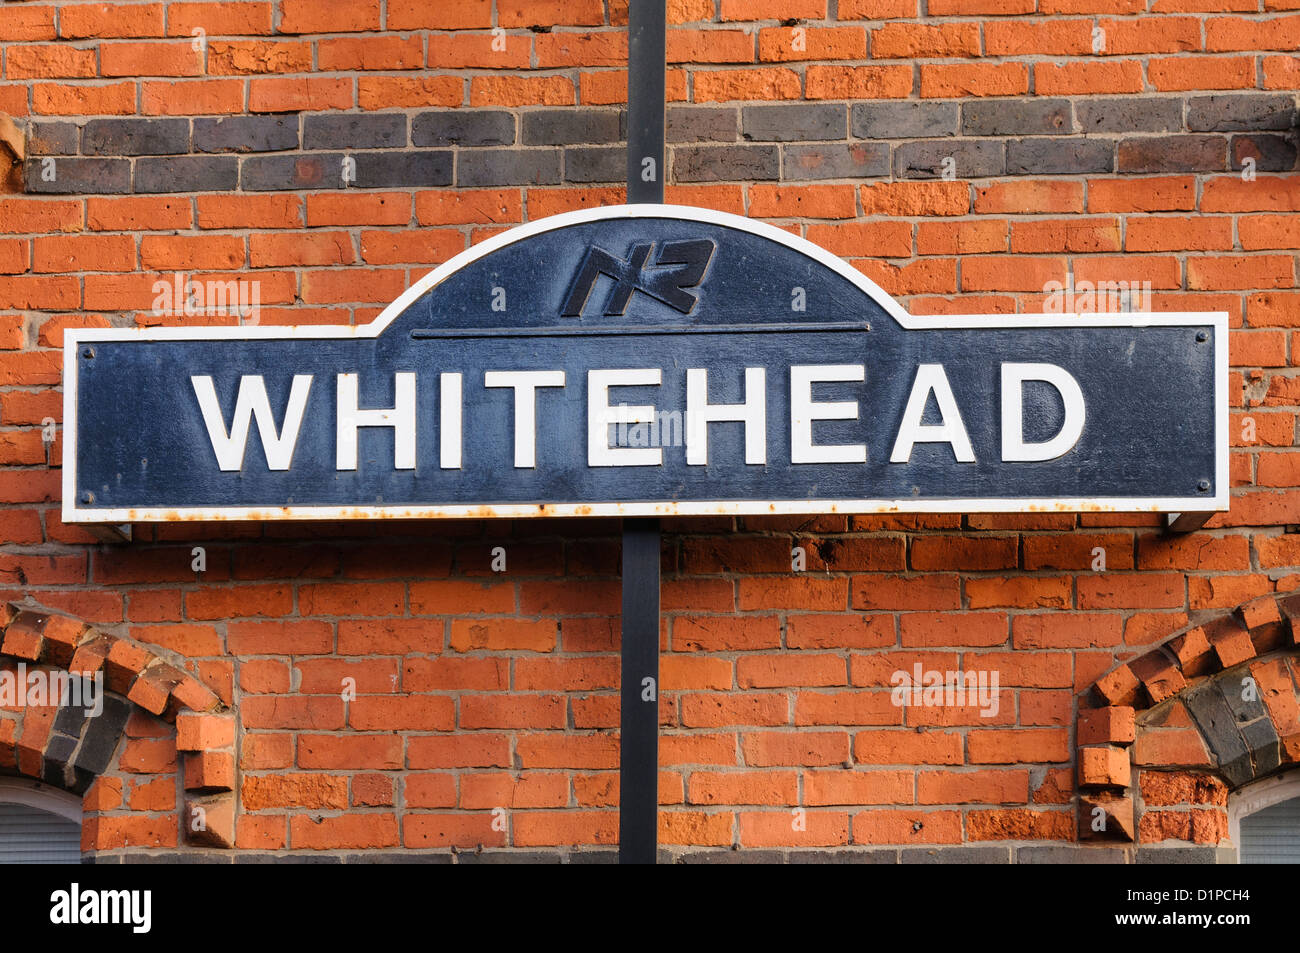 Sign at Whitehead train station - Stock Image